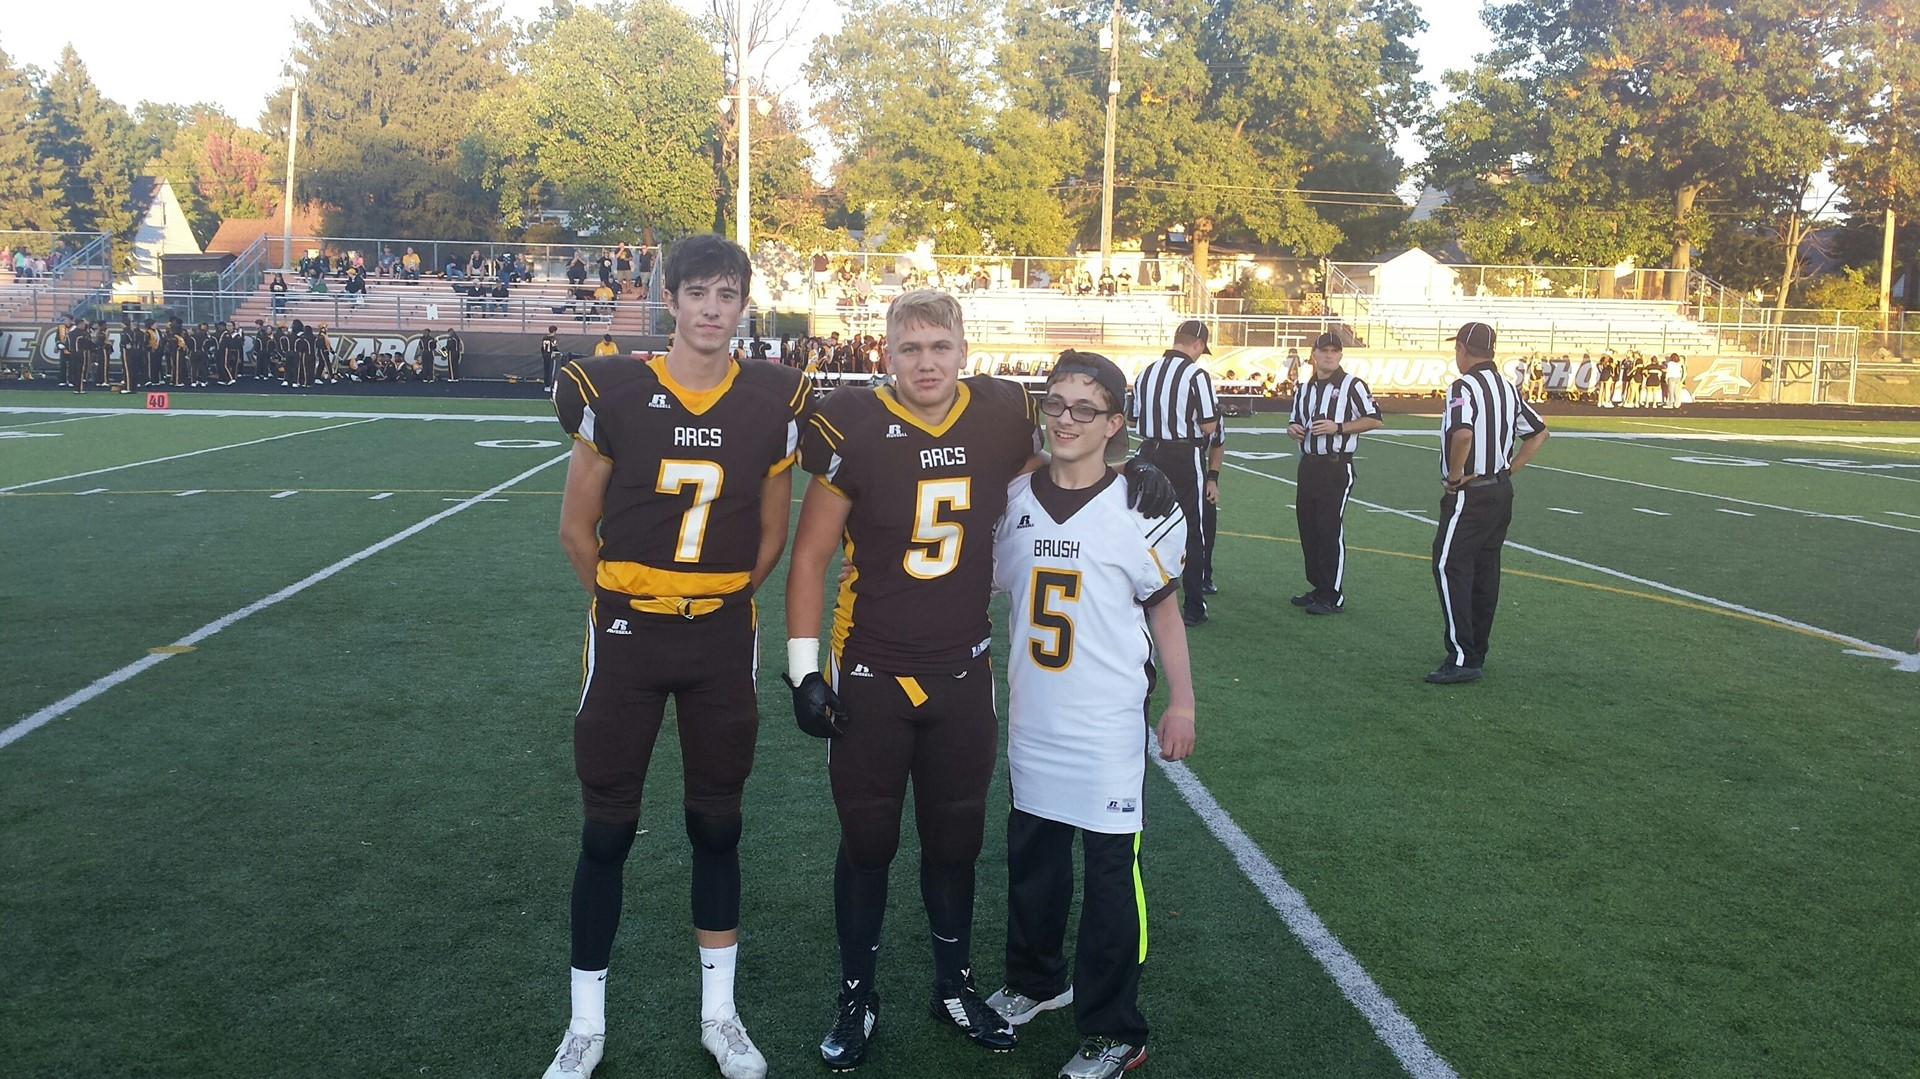 Sean O'Connell Honorary Captain